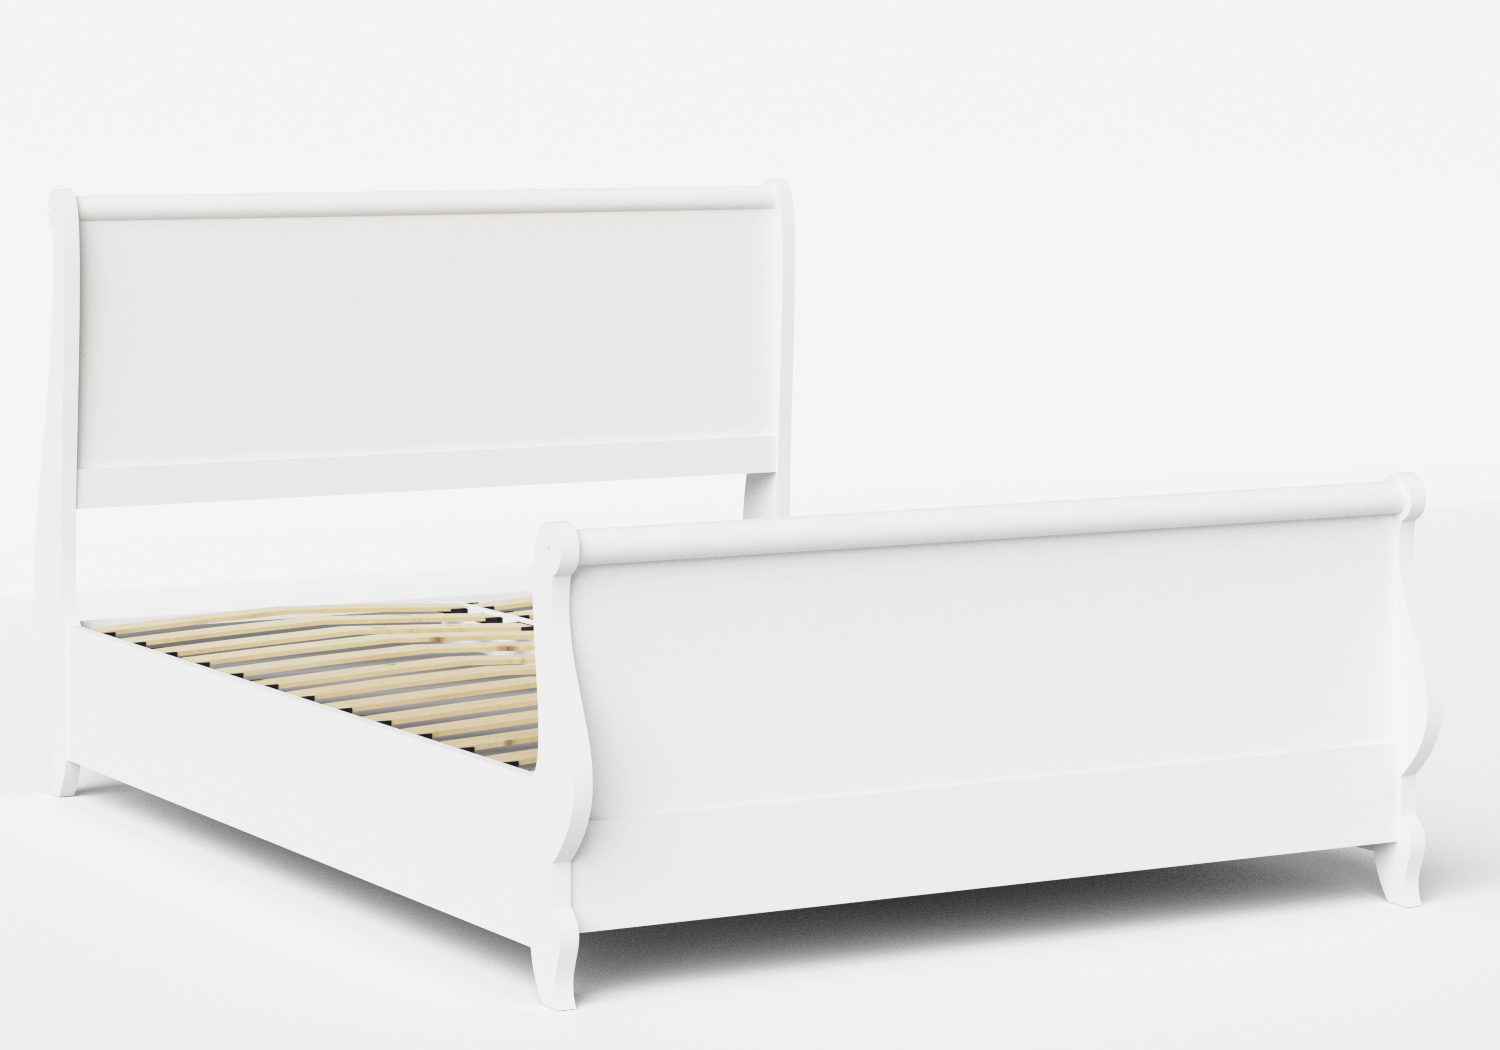 Elliot Wood Bed in White shown with slatted frame